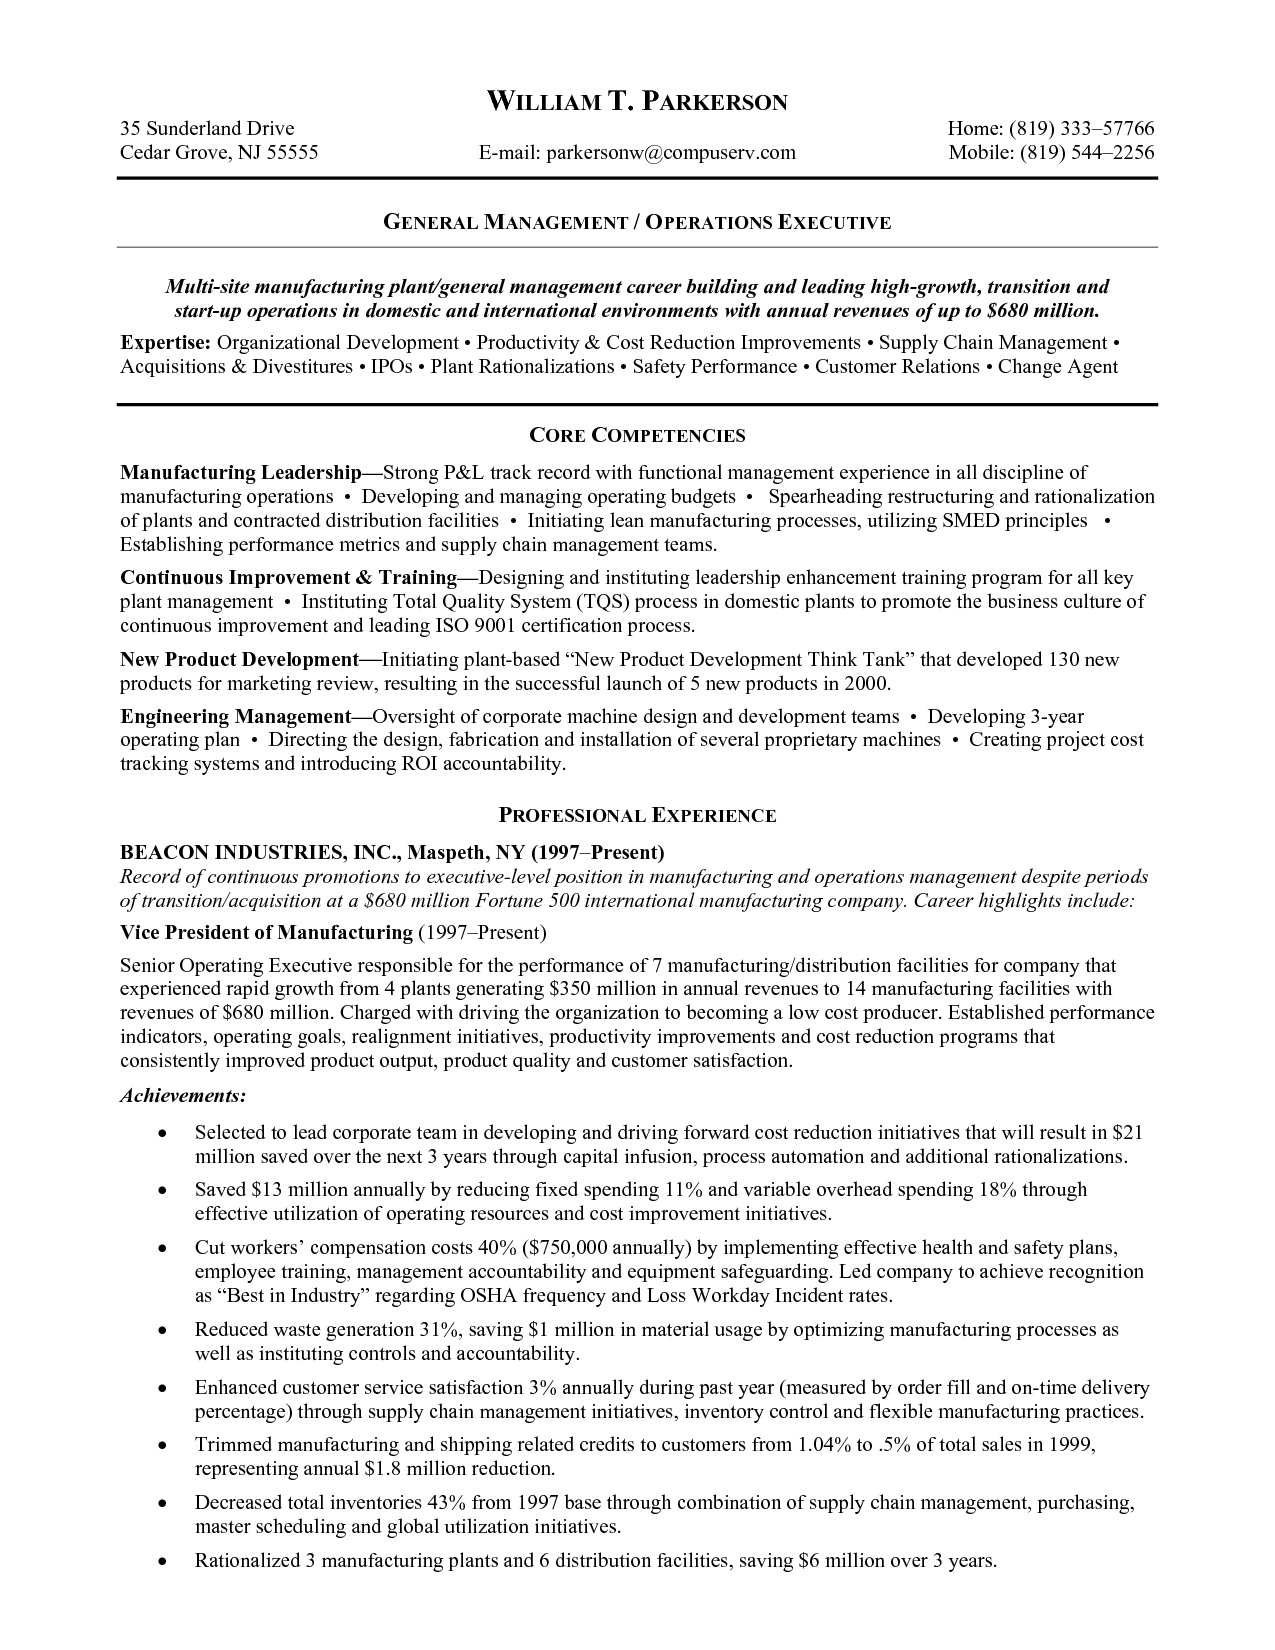 General Resume Template General Manufacturing Resume Samples Objective Examples Free Edit